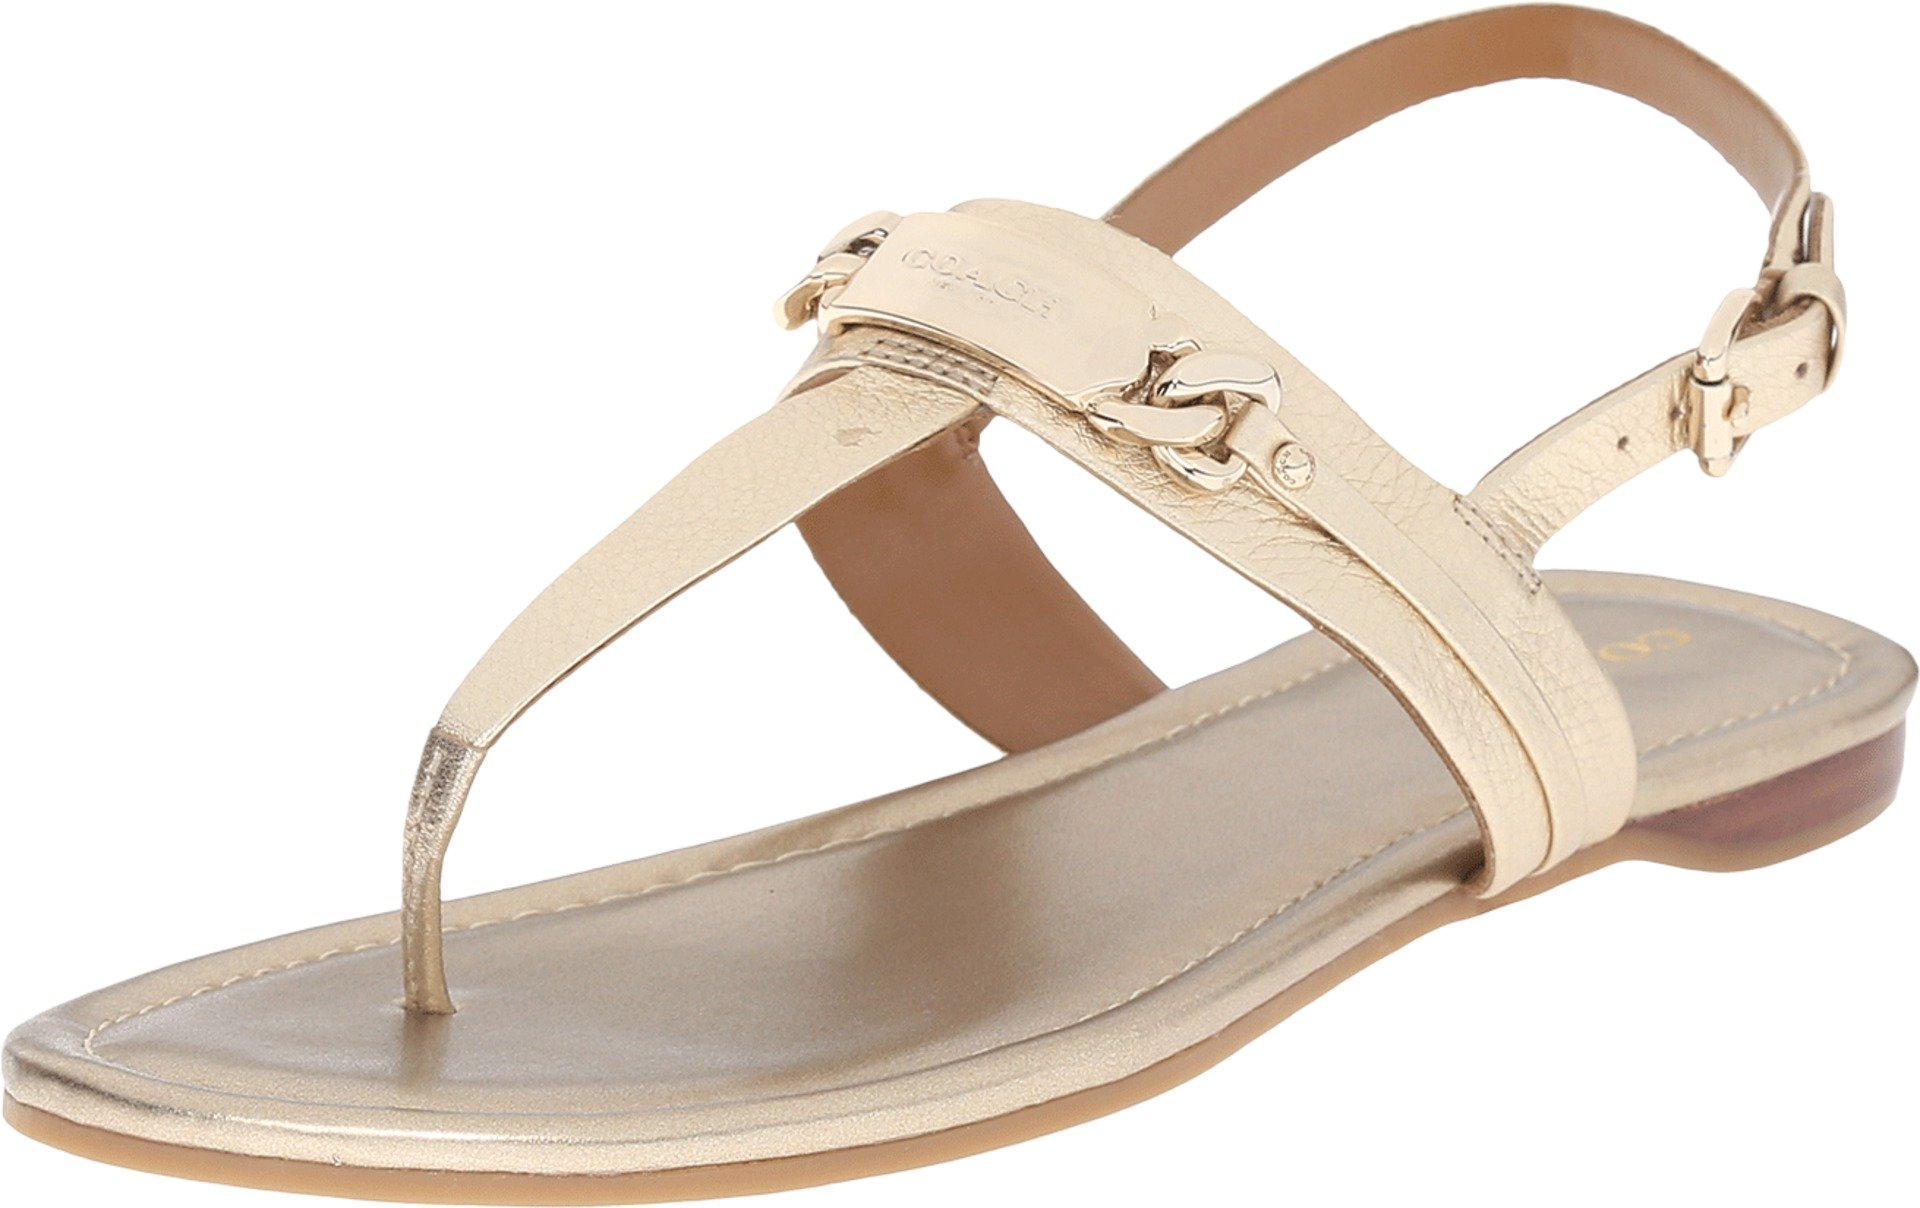 Coach Caterine Womens Leather Thong Sandals (8.5, platinum)